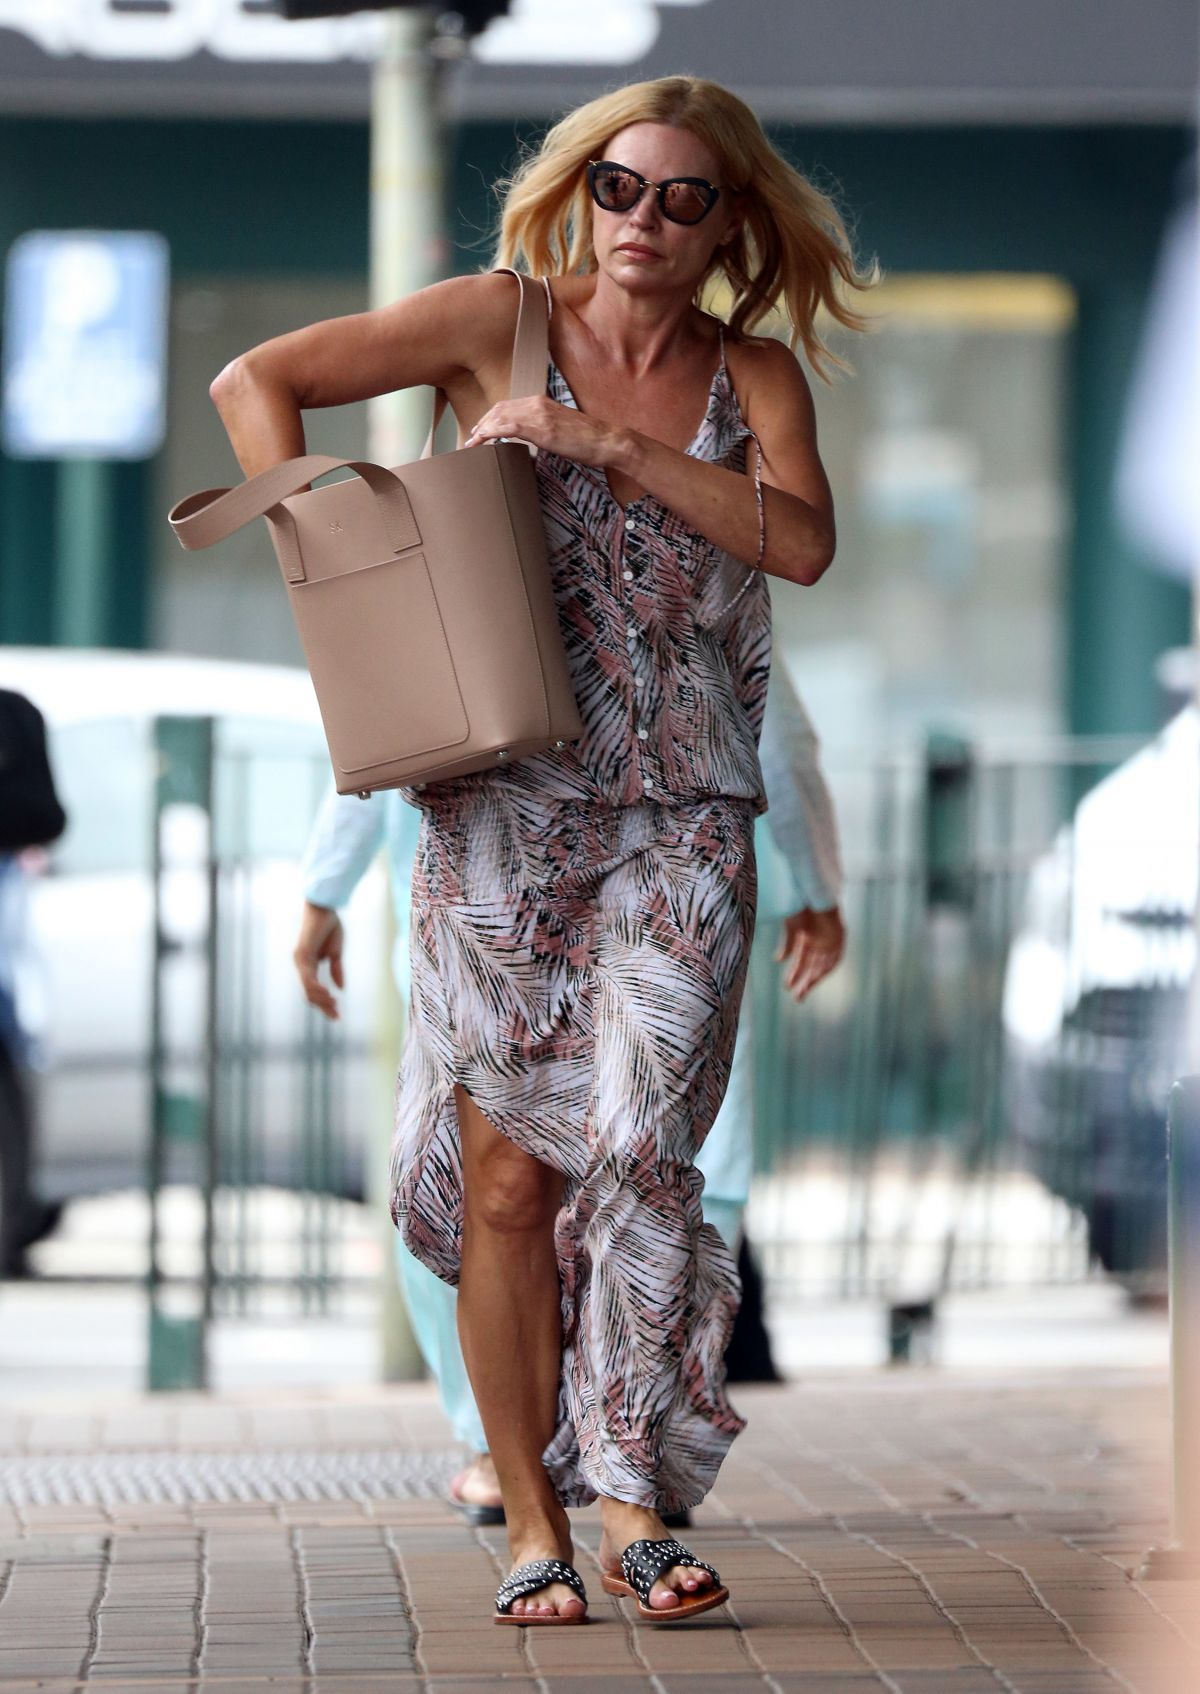 sonia kruger - photo #7